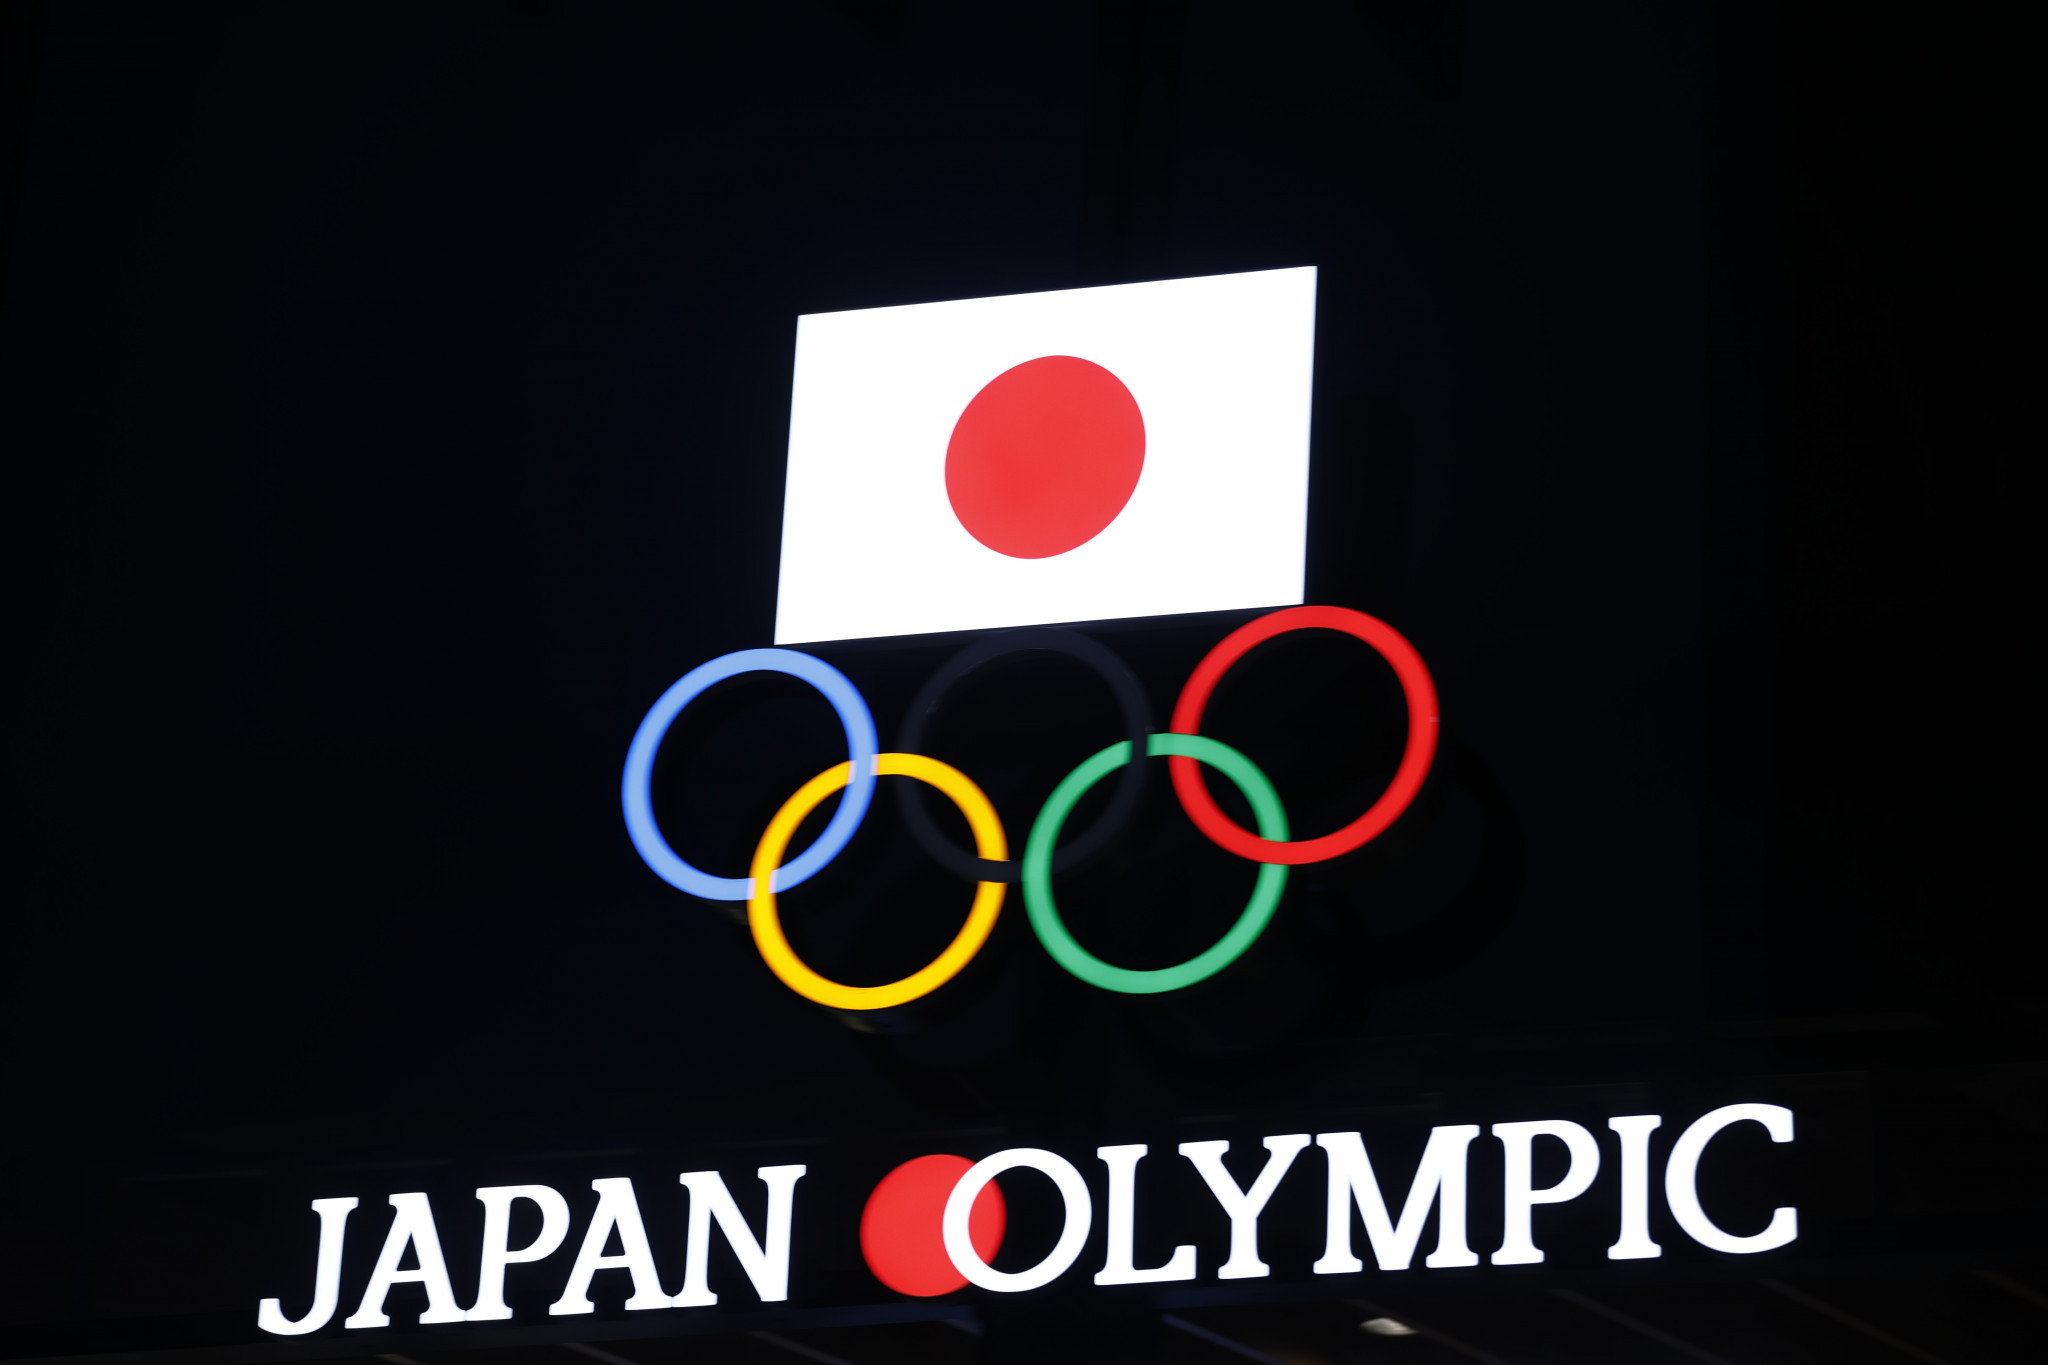 Japan is preparing to host the Asian Games in Aichi-Nagoya in 2026 ©Getty Images